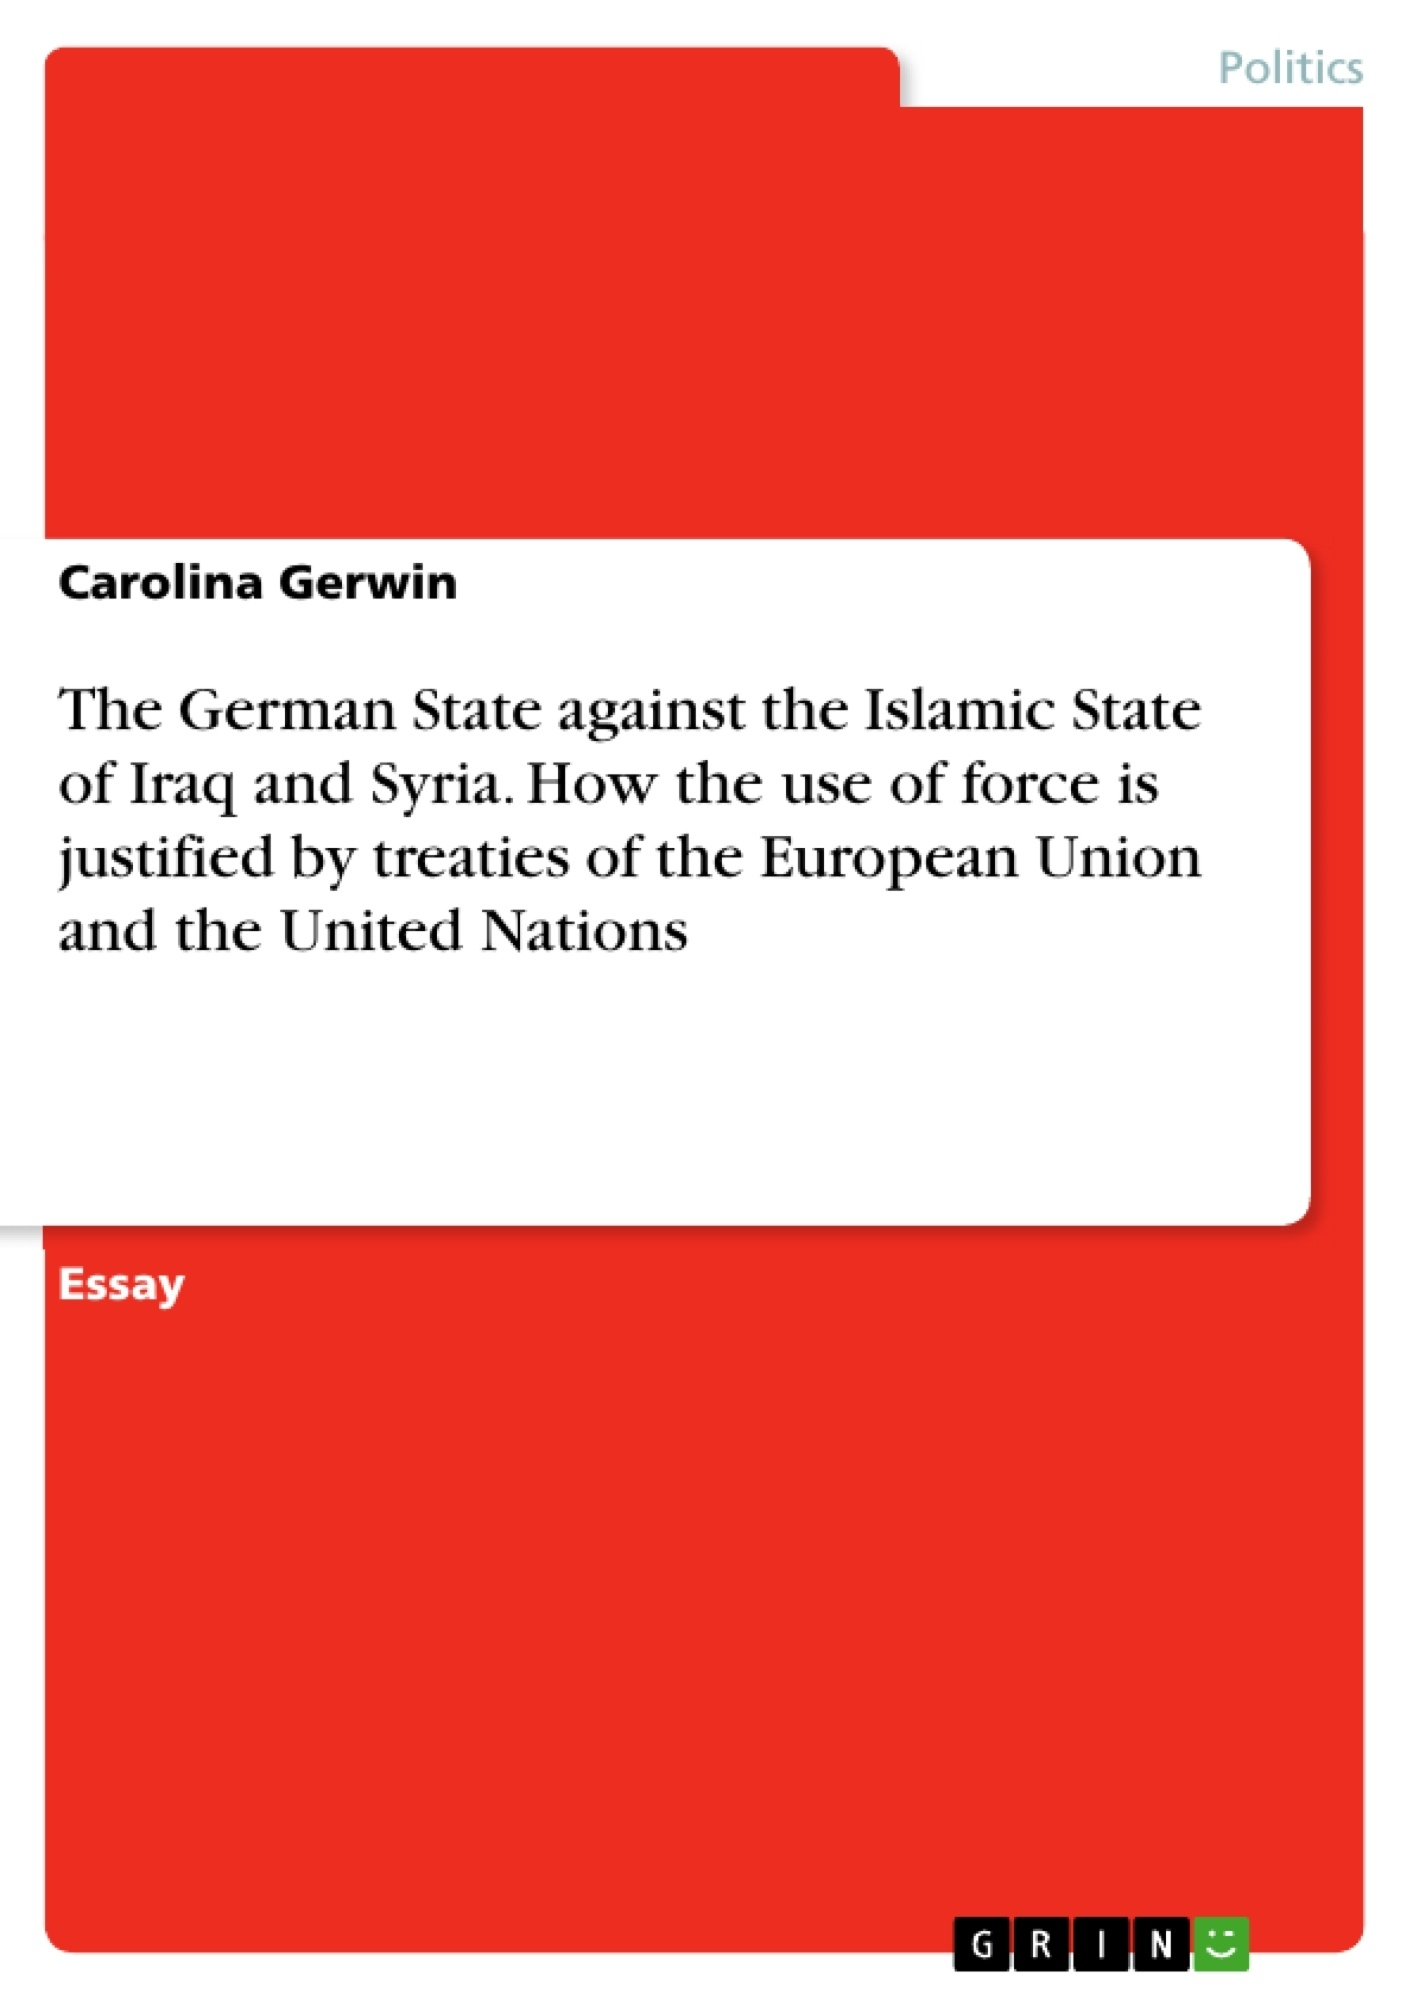 Title: The German State against the Islamic State of Iraq and Syria. How the use of force is justified by treaties of the European Union and the United Nations